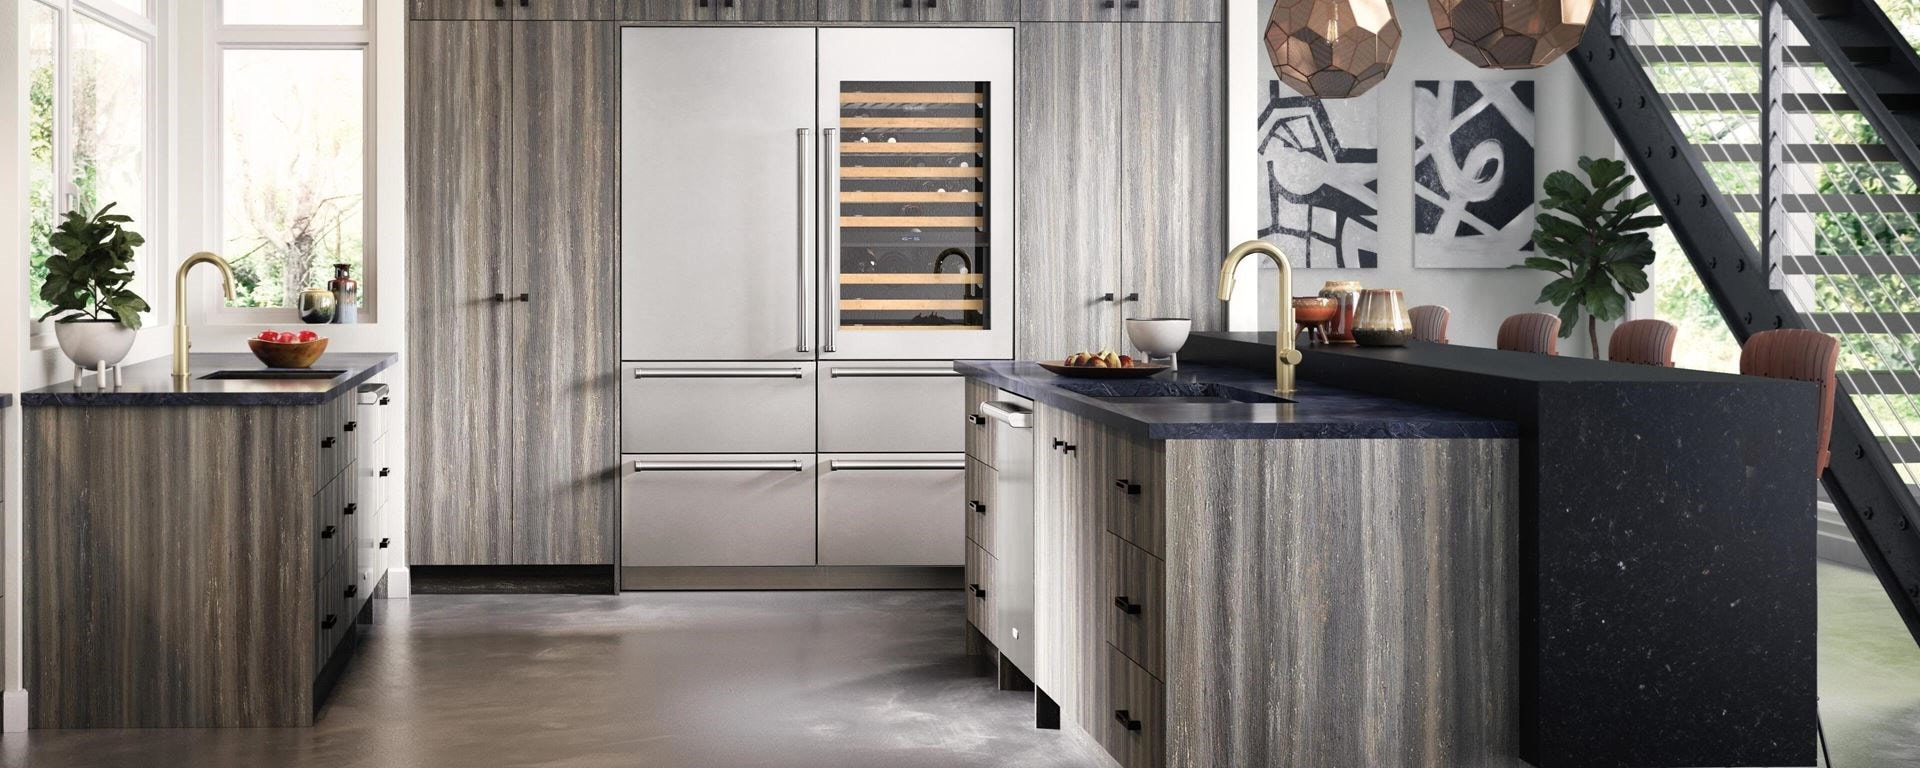 Cove dishwasher with custom panels blended into stunning kitchen design